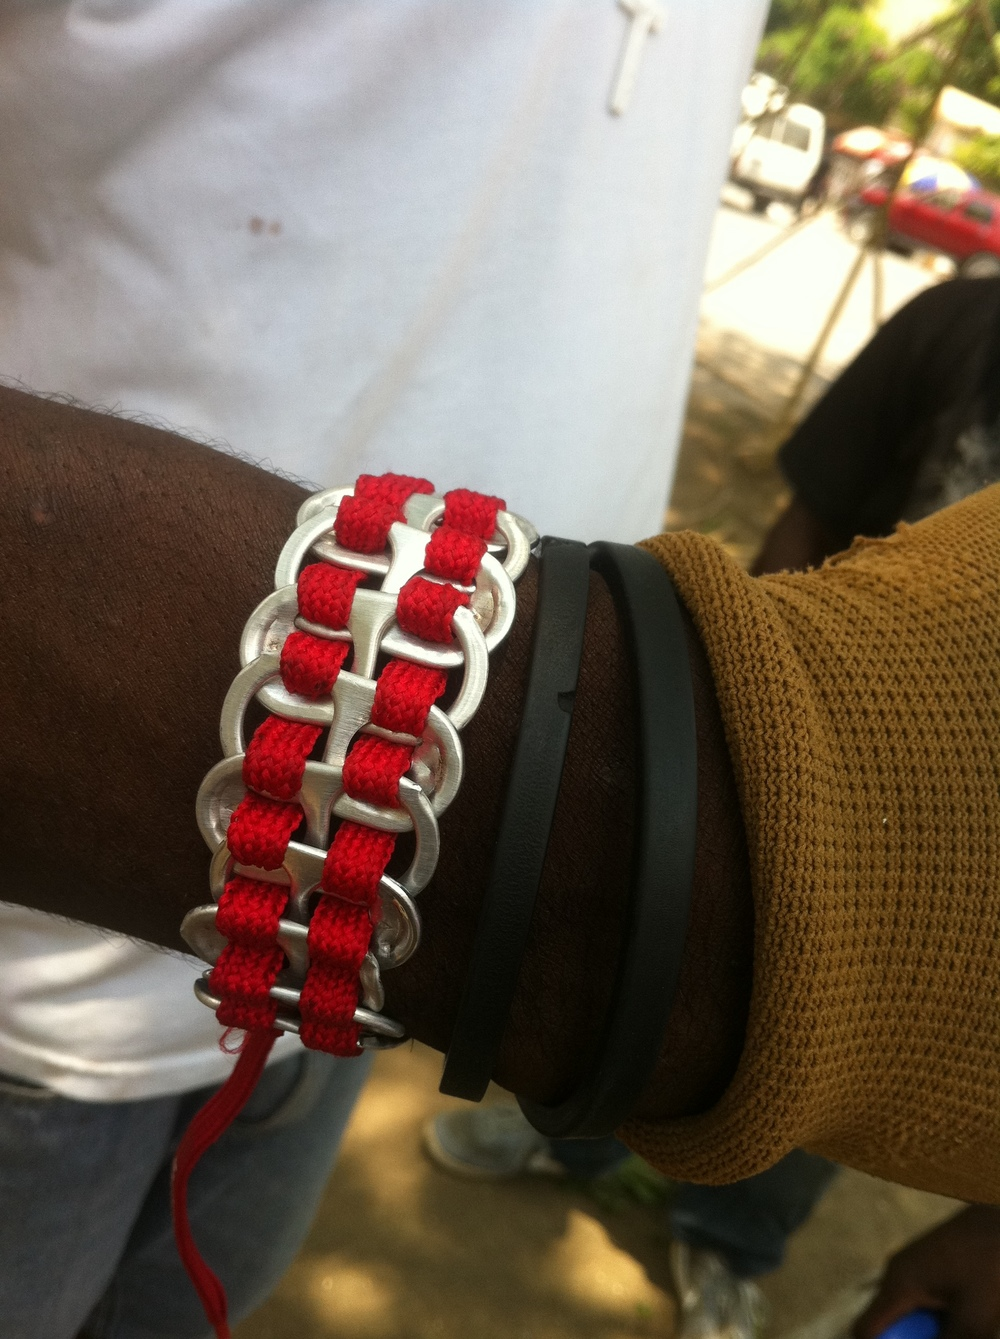 bracelet from our RED Nike laces and can tabs